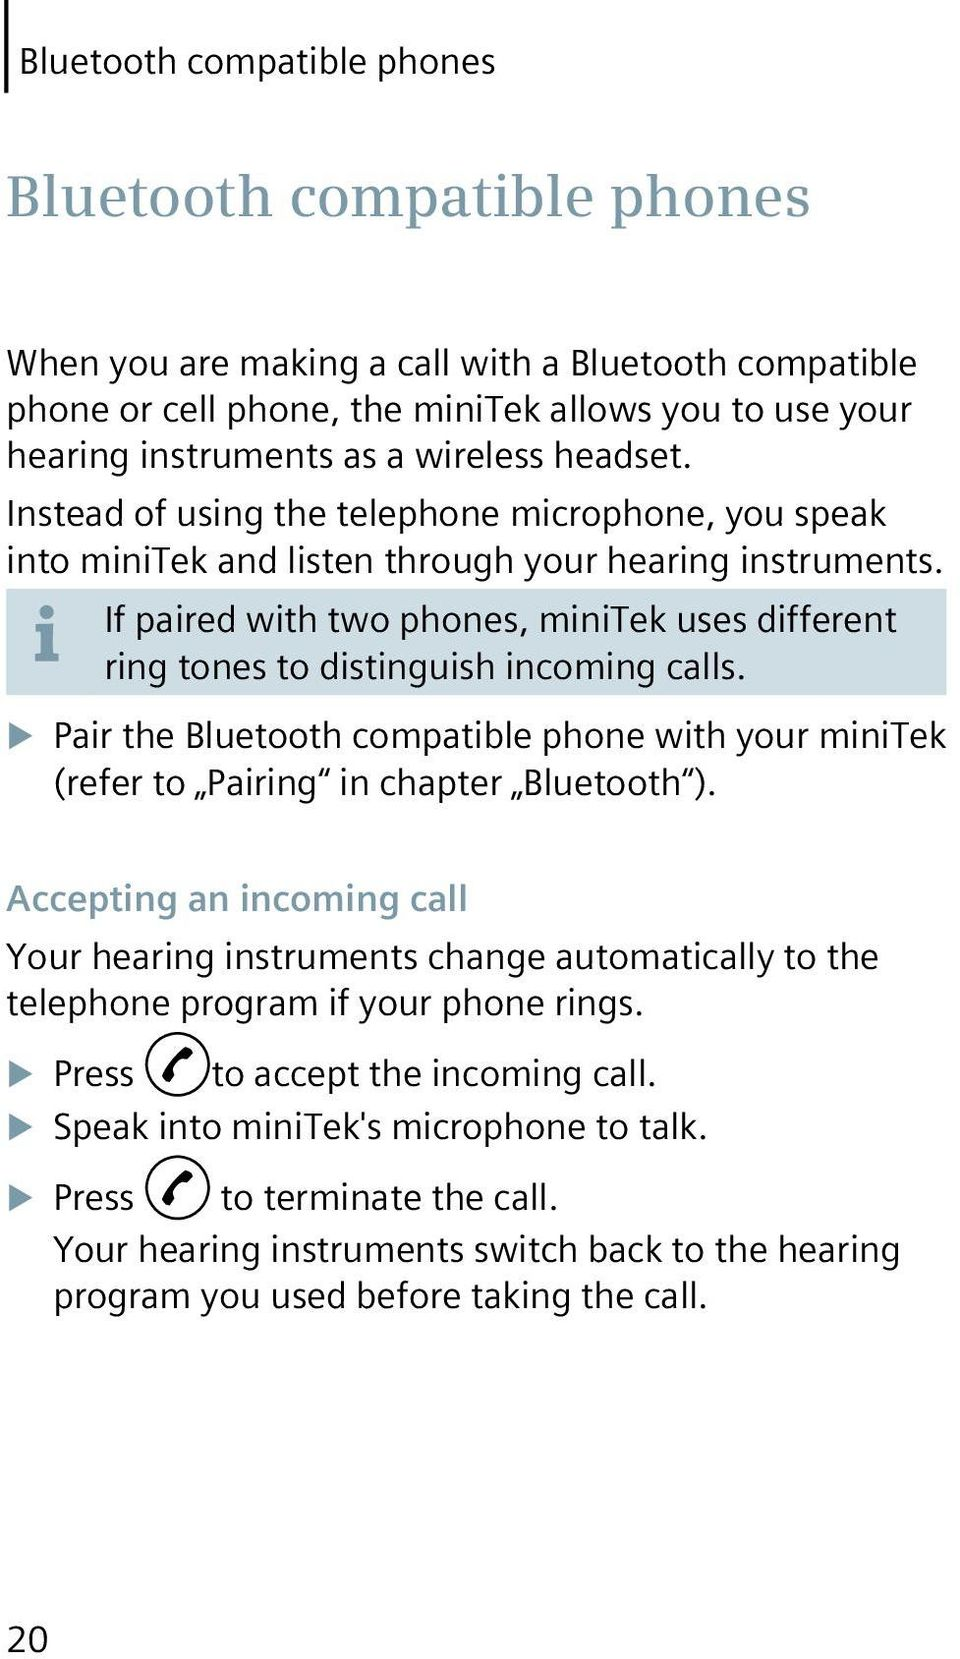 If paired with two phones, minitek uses different ring tones to distinguish incoming calls. Pair the Bluetooth compatible phone with your minitek (refer to Pairing in chapter Bluetooth ).